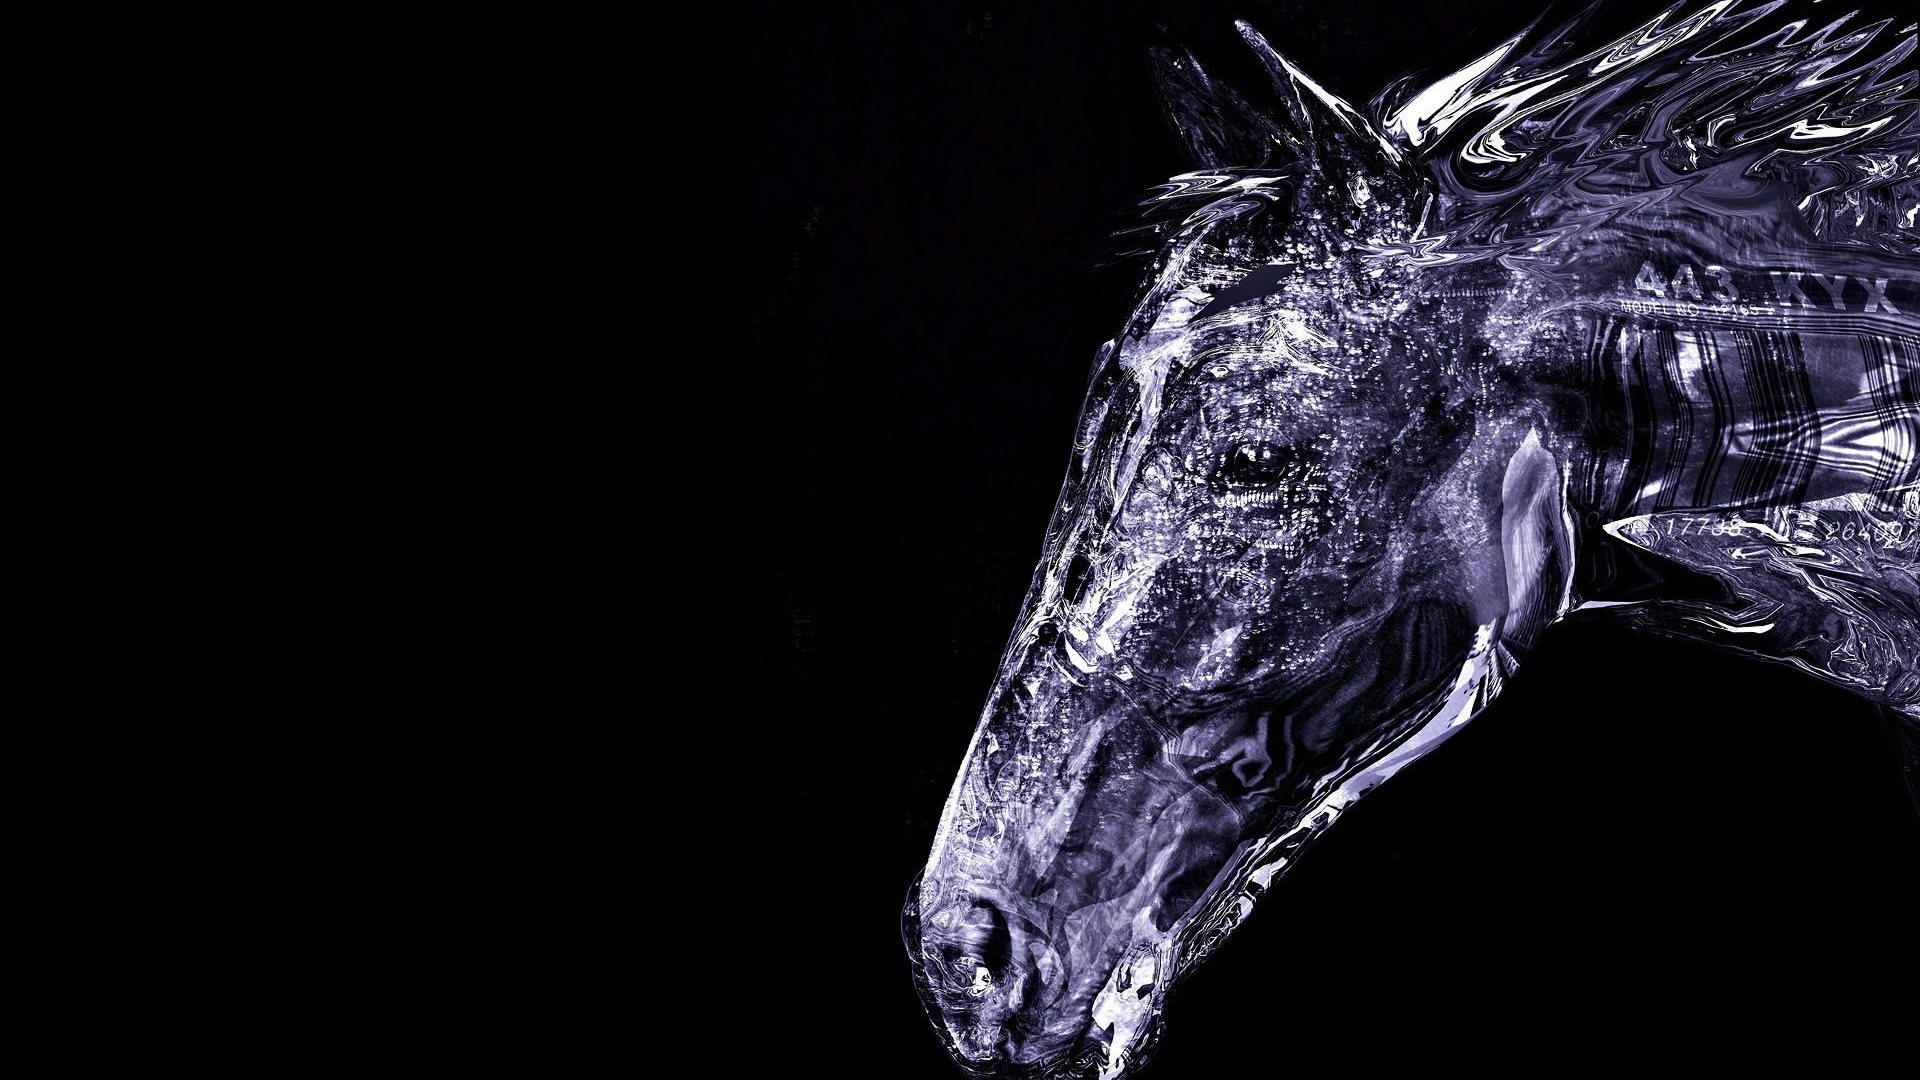 1920x1080 Collection of Cool Horse Backgrounds on HDWallpapers Cool Horse Wallpapers  Wallpapers)